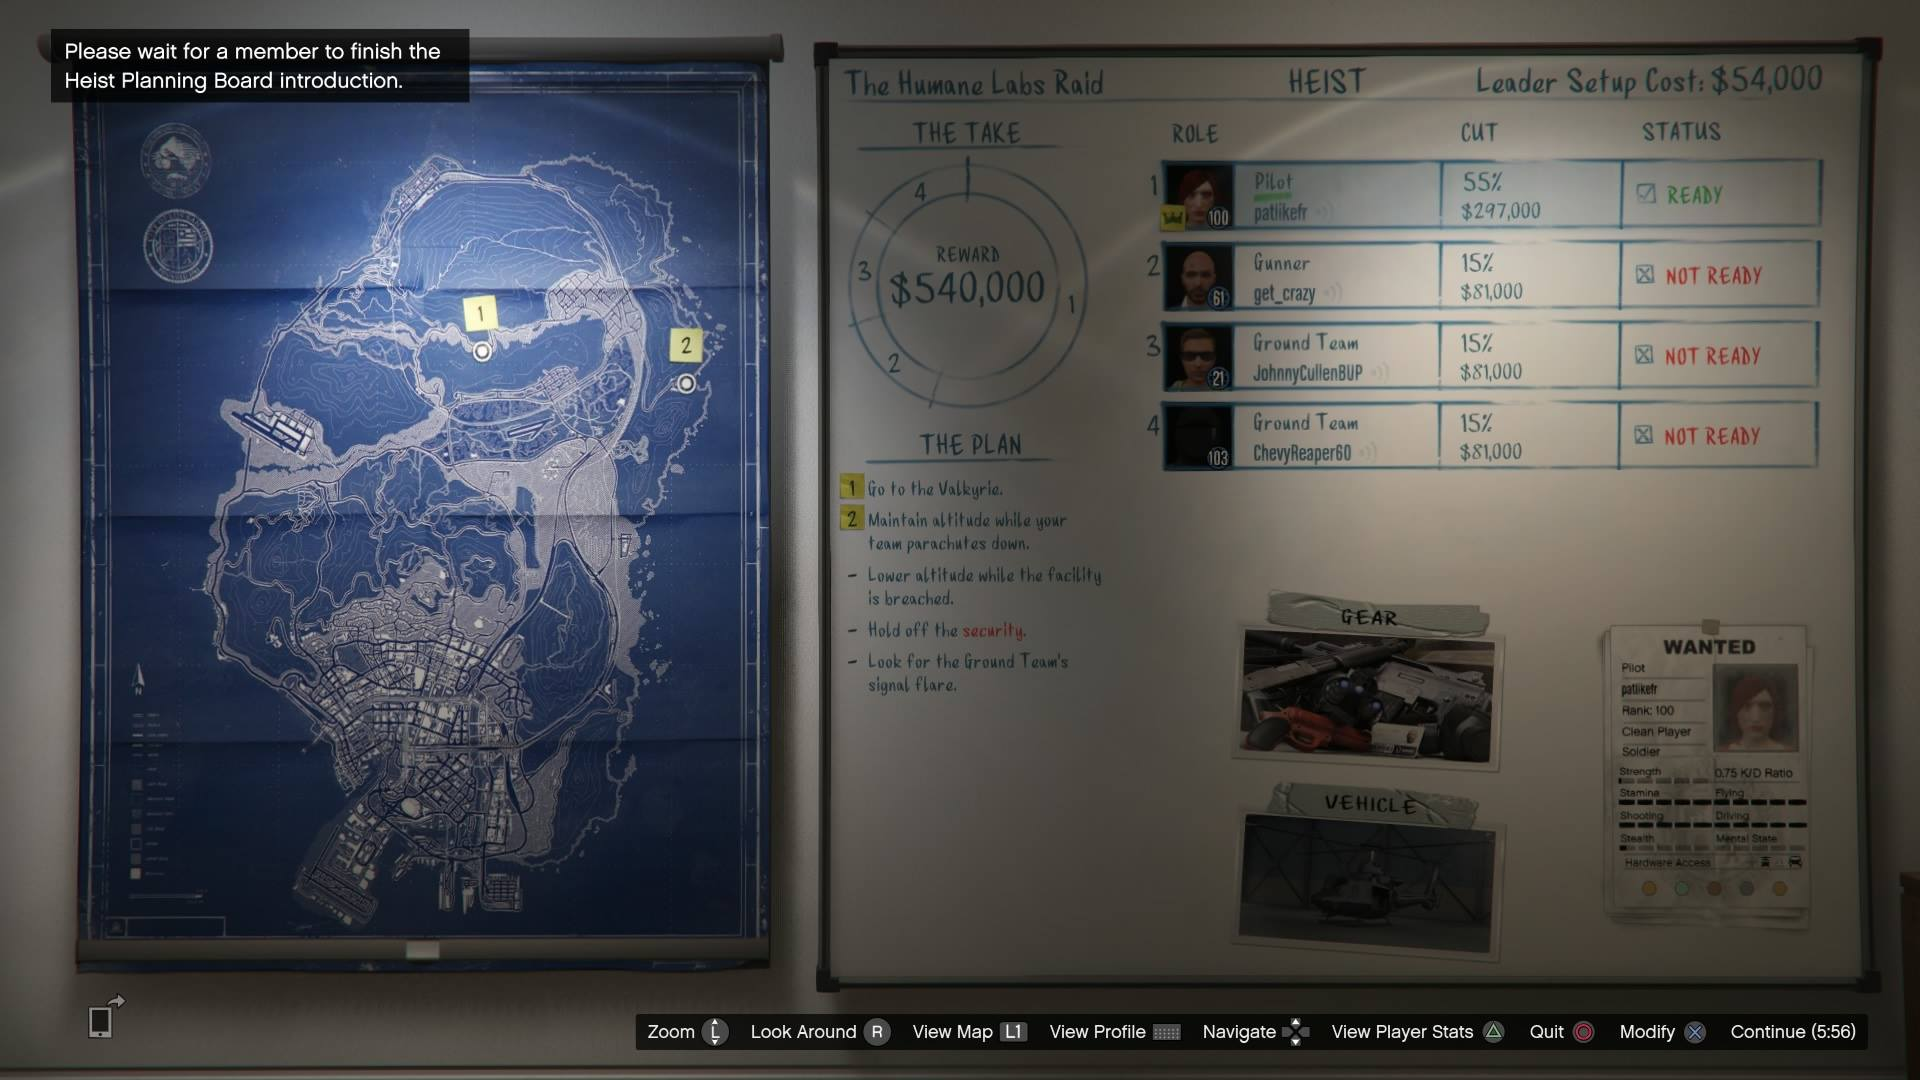 GTA 5 Online Heists guide: The Humane Labs Raid - Page 4 of 6 - VG247